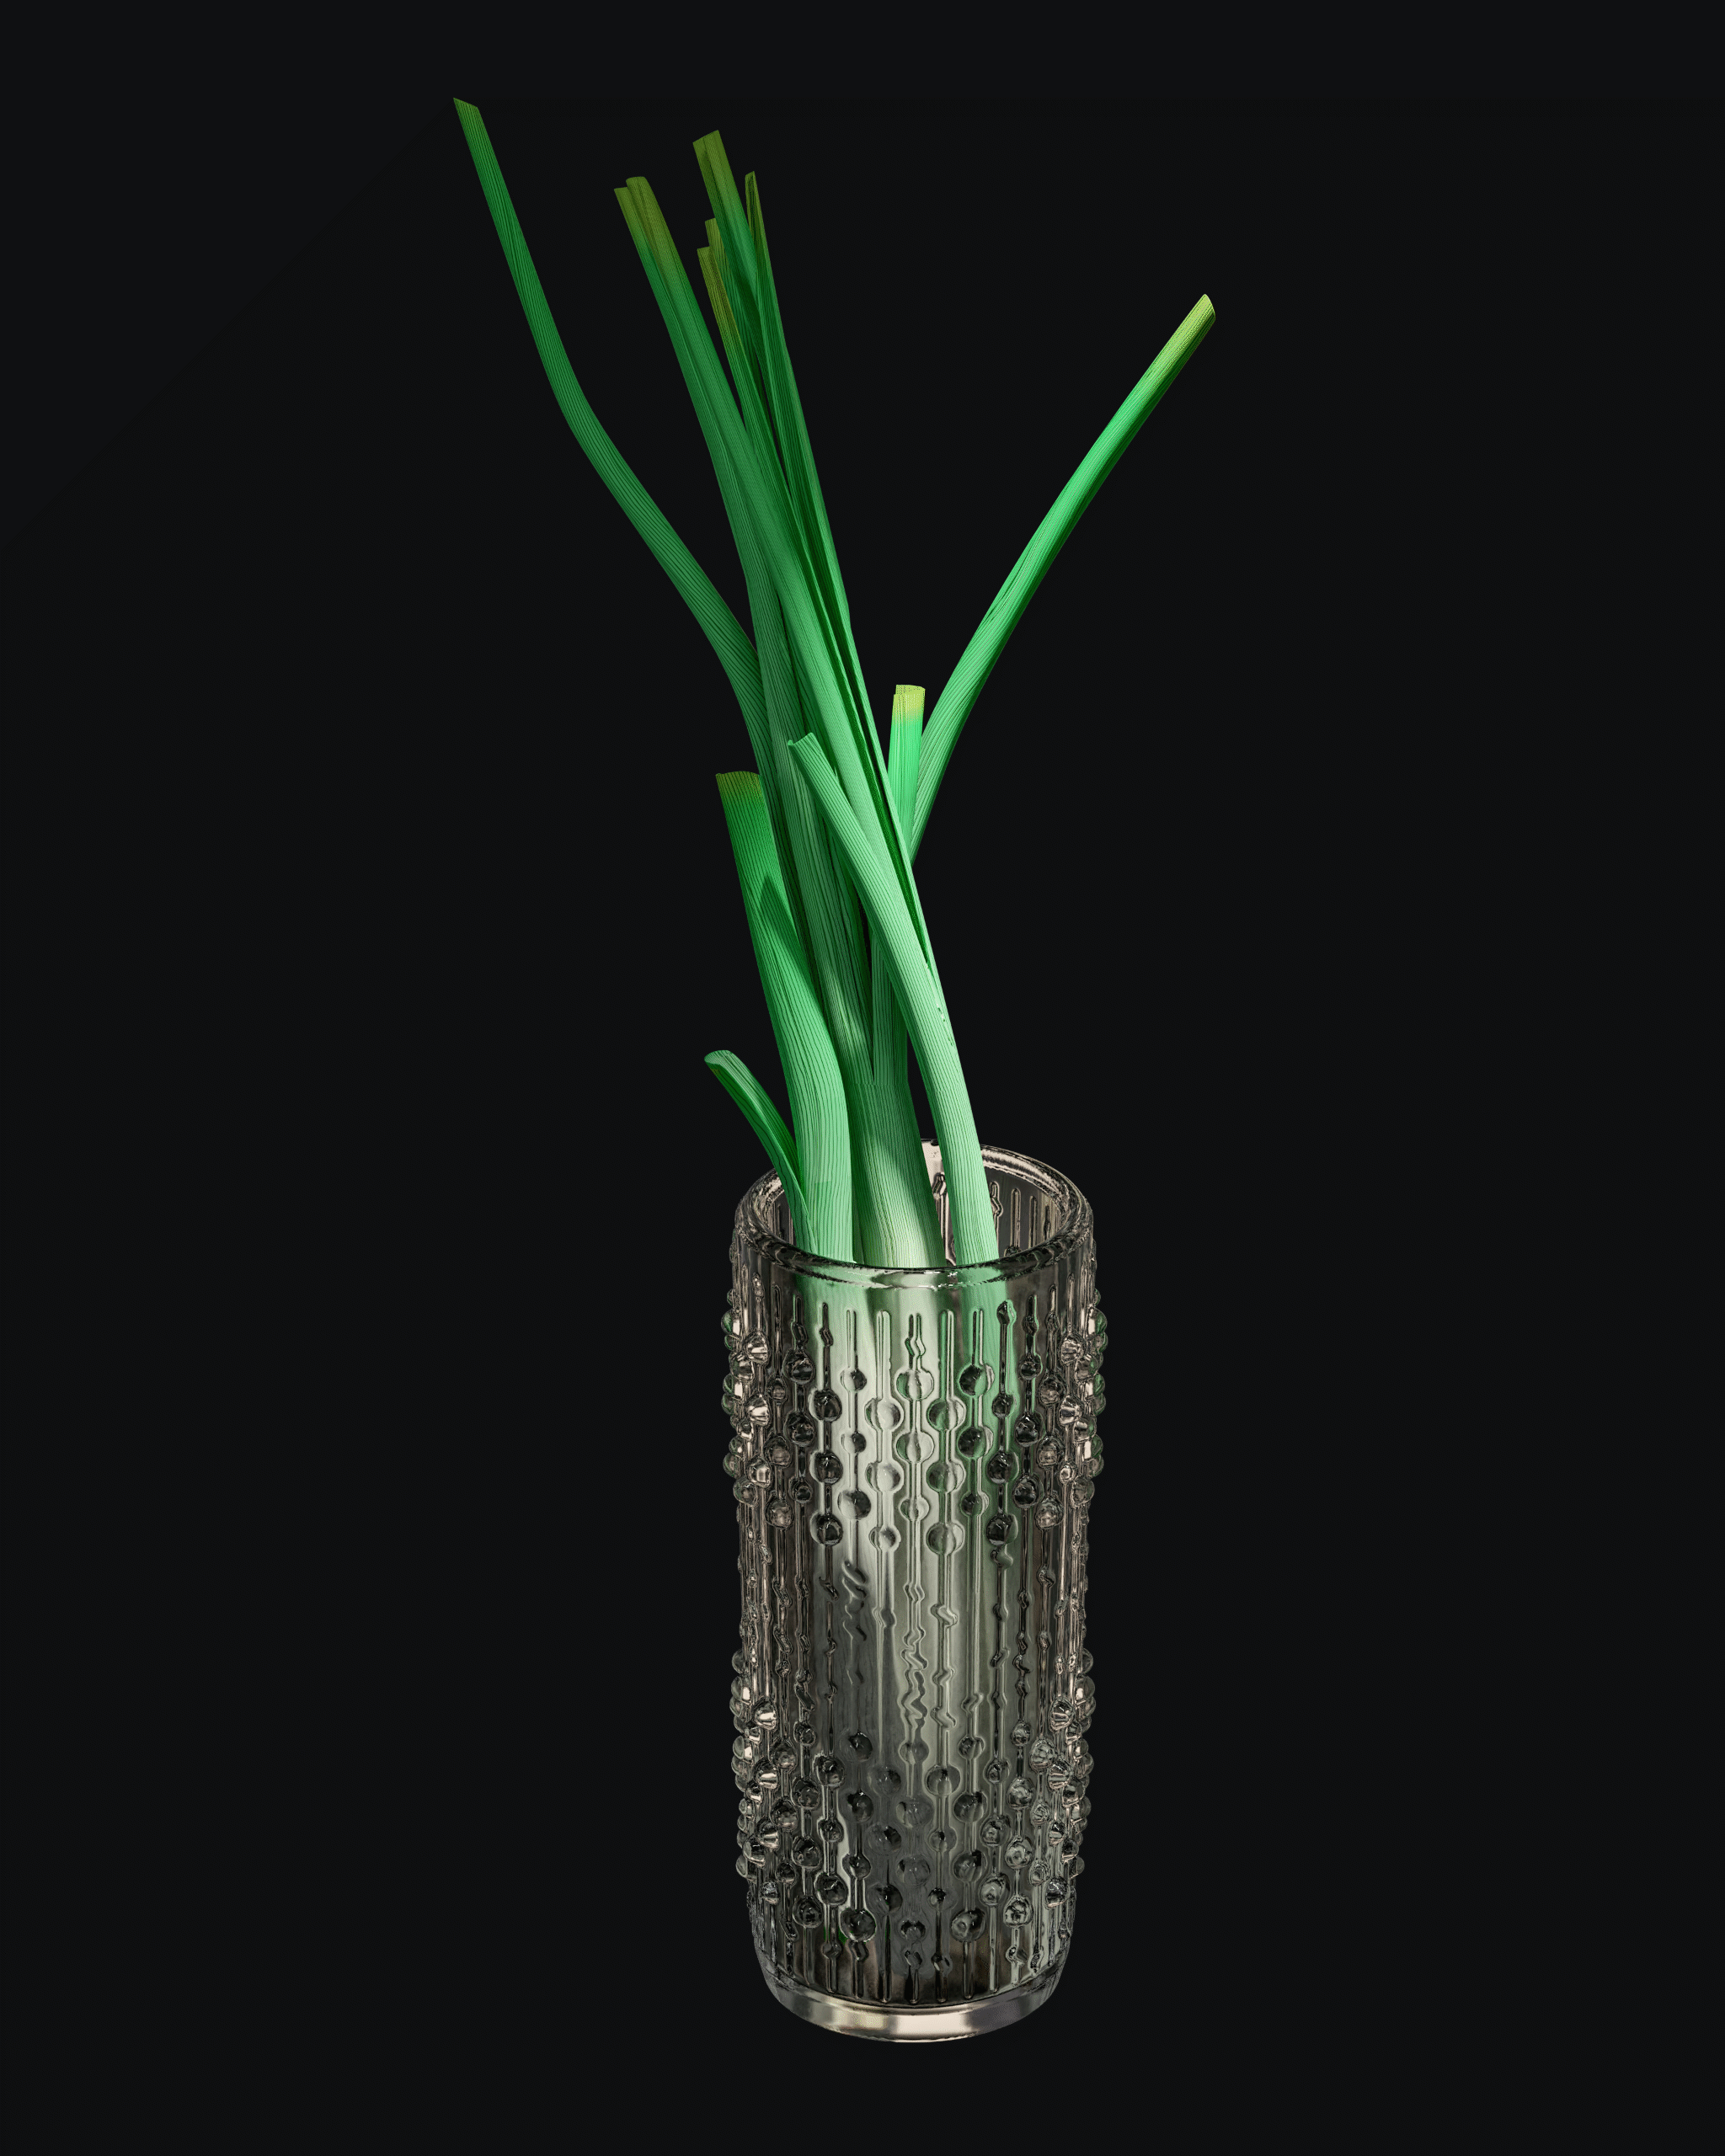 Glass vase with scallions on a black background